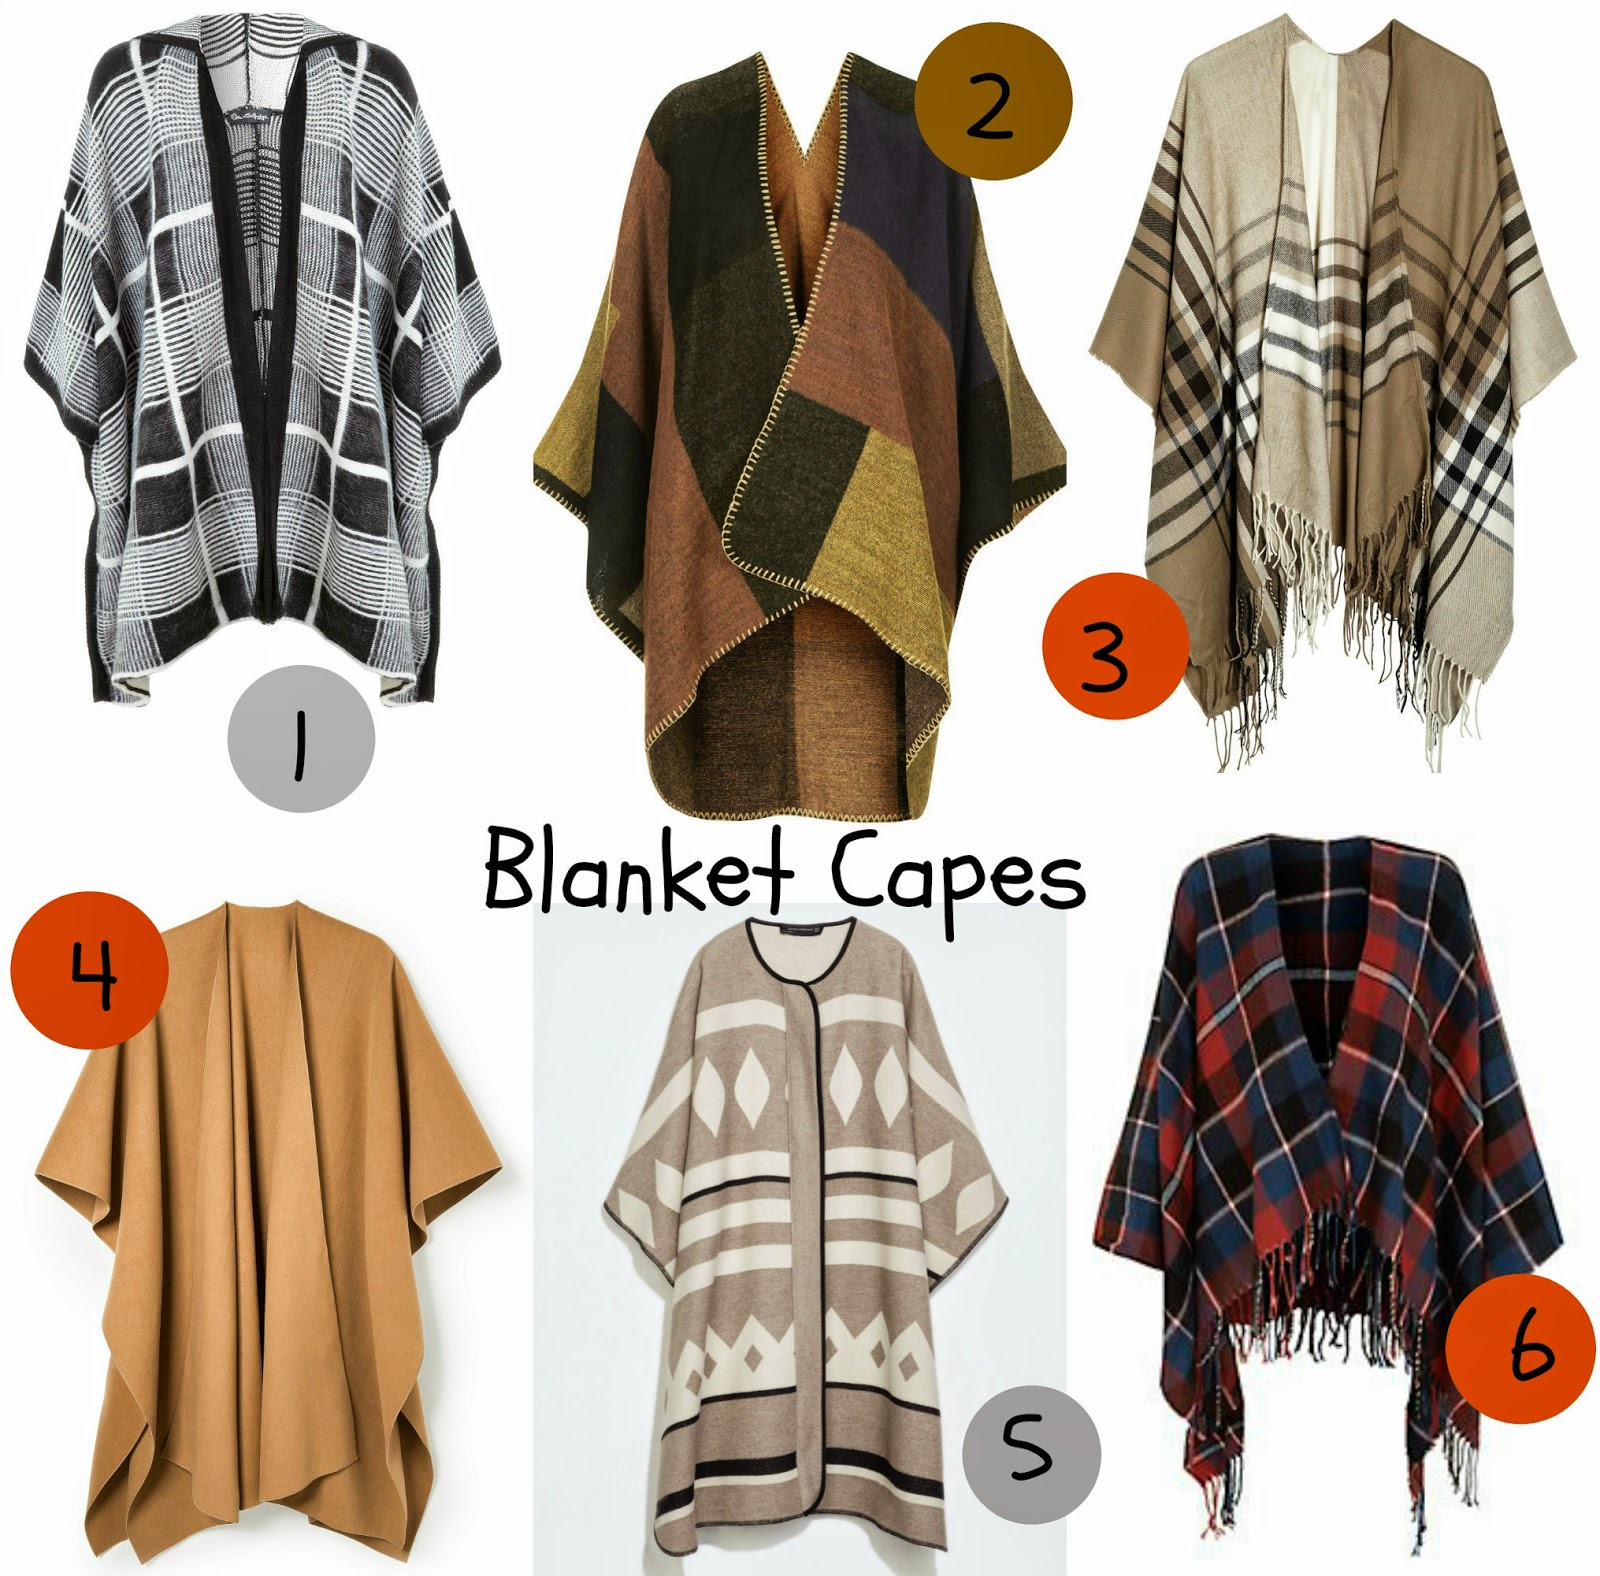 6 Stylish & Cosy Blanket Capes perfect for Bonfire Night | burberry Propsum | blanket cape | blanket poncho | sarah jessica parker | olivia palermo | rosie hnuntington whitely | models | care | burberry | catwalk | high street copies | blanket coat | new Look | next | topshop | miss selfrige | mango | prim ark | burbeey get the look | fashion catwalk style | bonfire night | fireworks display | winter style | cosy and stylish fashion | biker boots | mamasVIB | style | fashion news